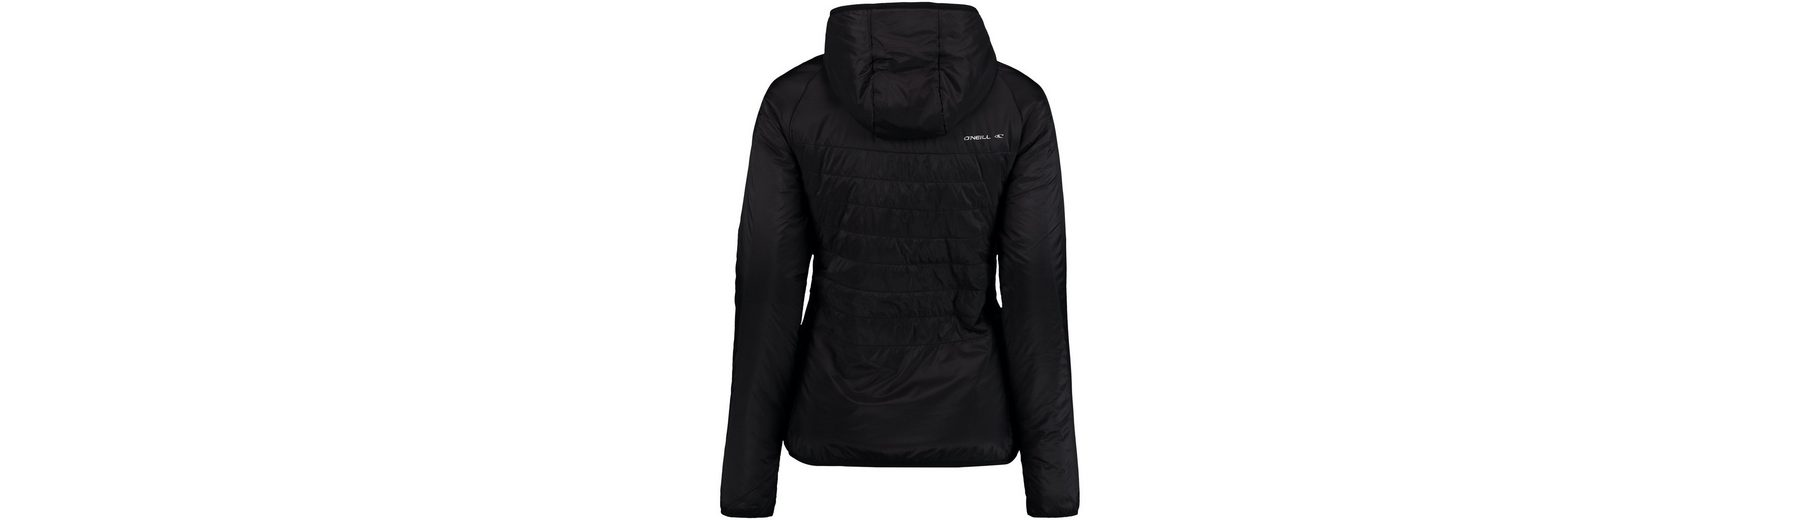 O'Neill Fleecejacke Kinetic windbreaker Spielraum-Shop EuGAeq1